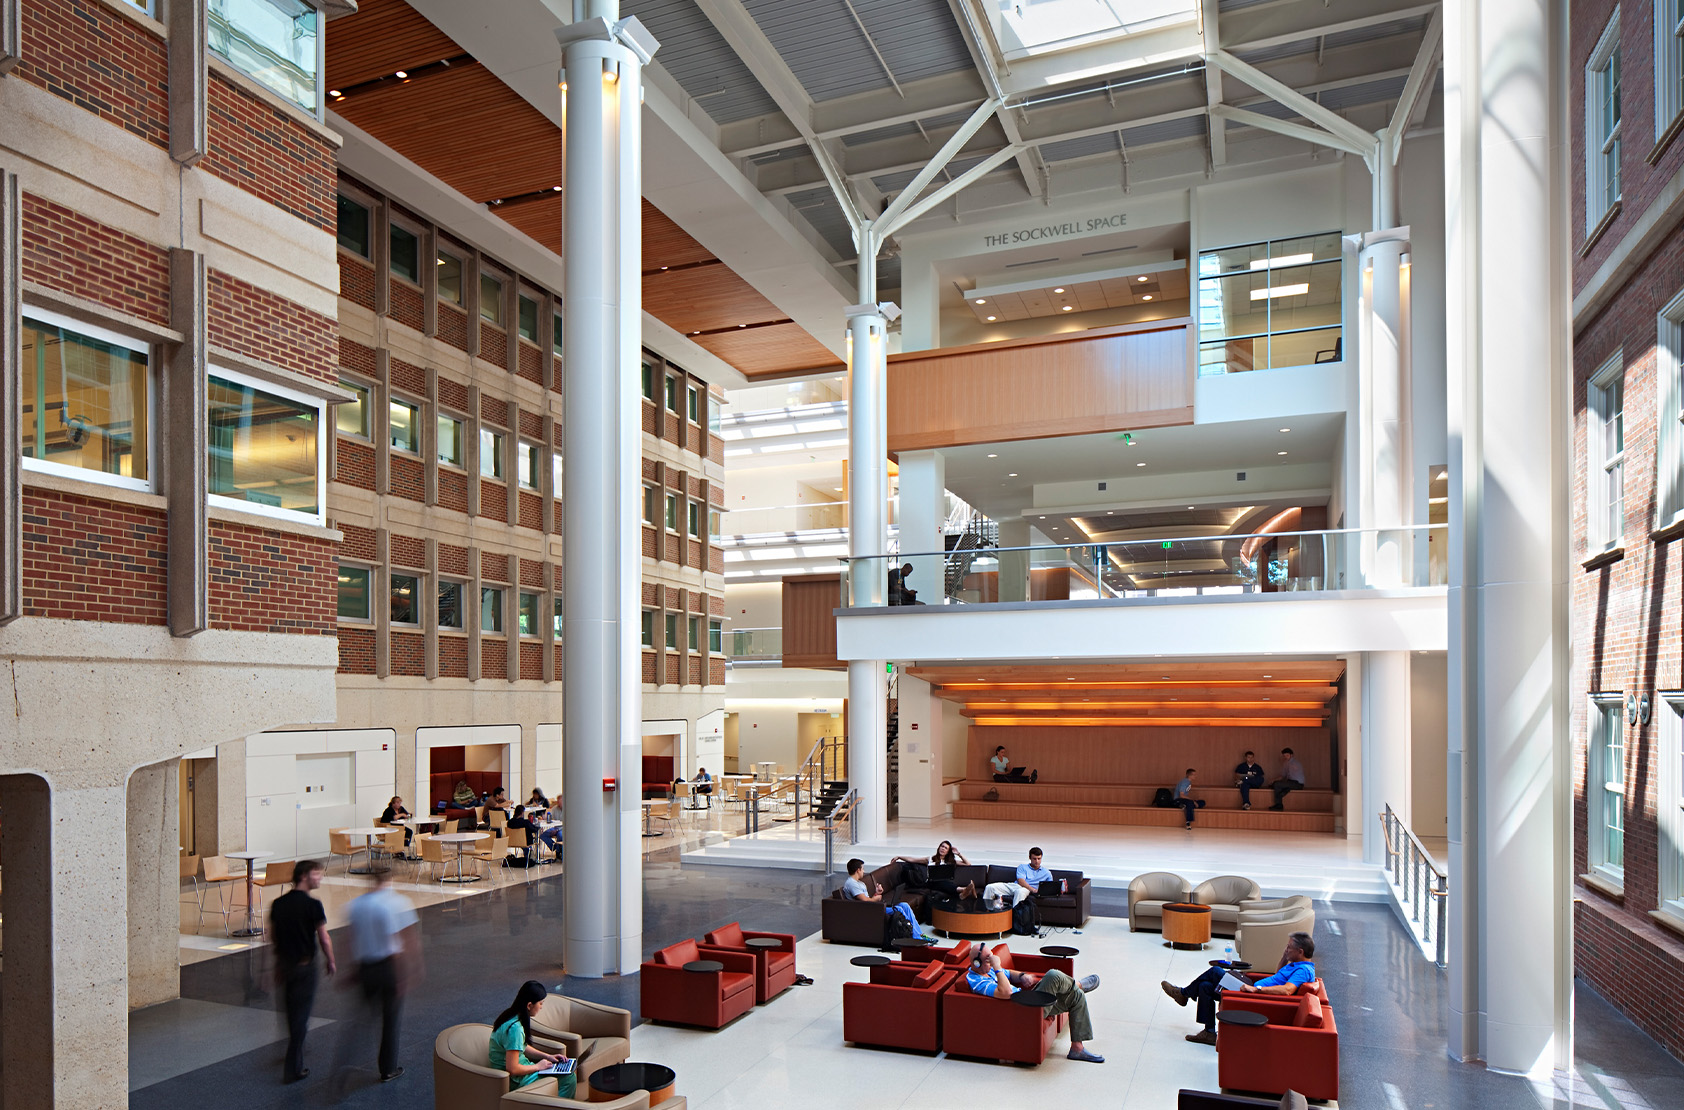 University of North Carolina - Koury Oral Health Sciences Center